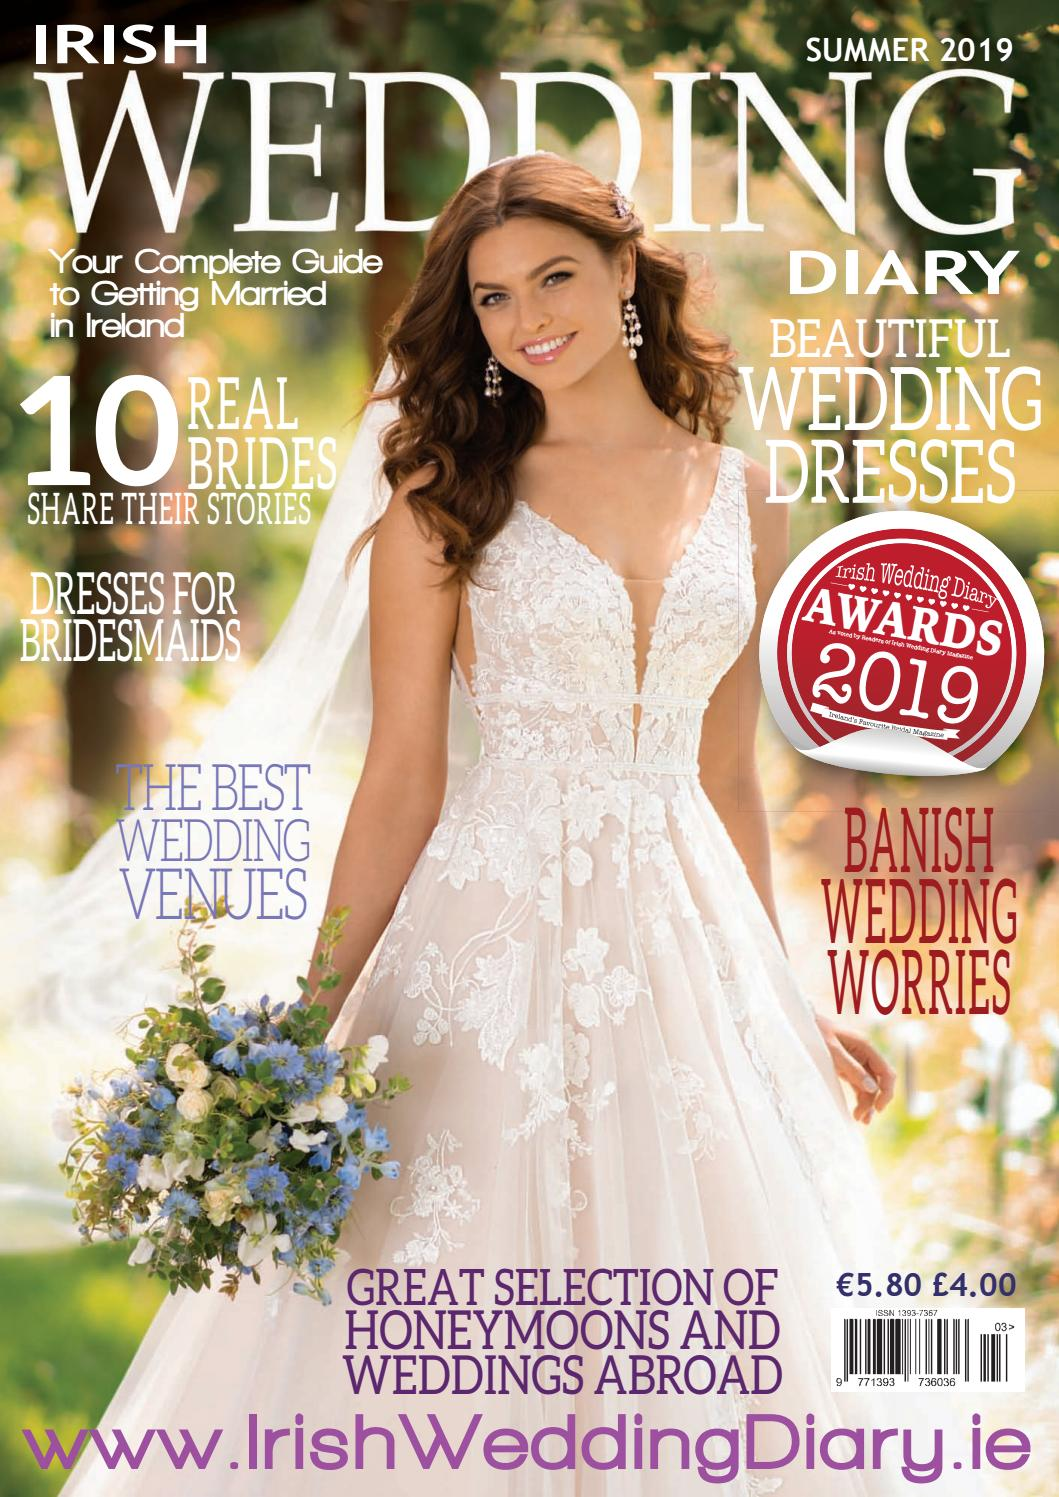 Irish Wedding Diary Summer 2019 By Irish Wedding Diary Magazine